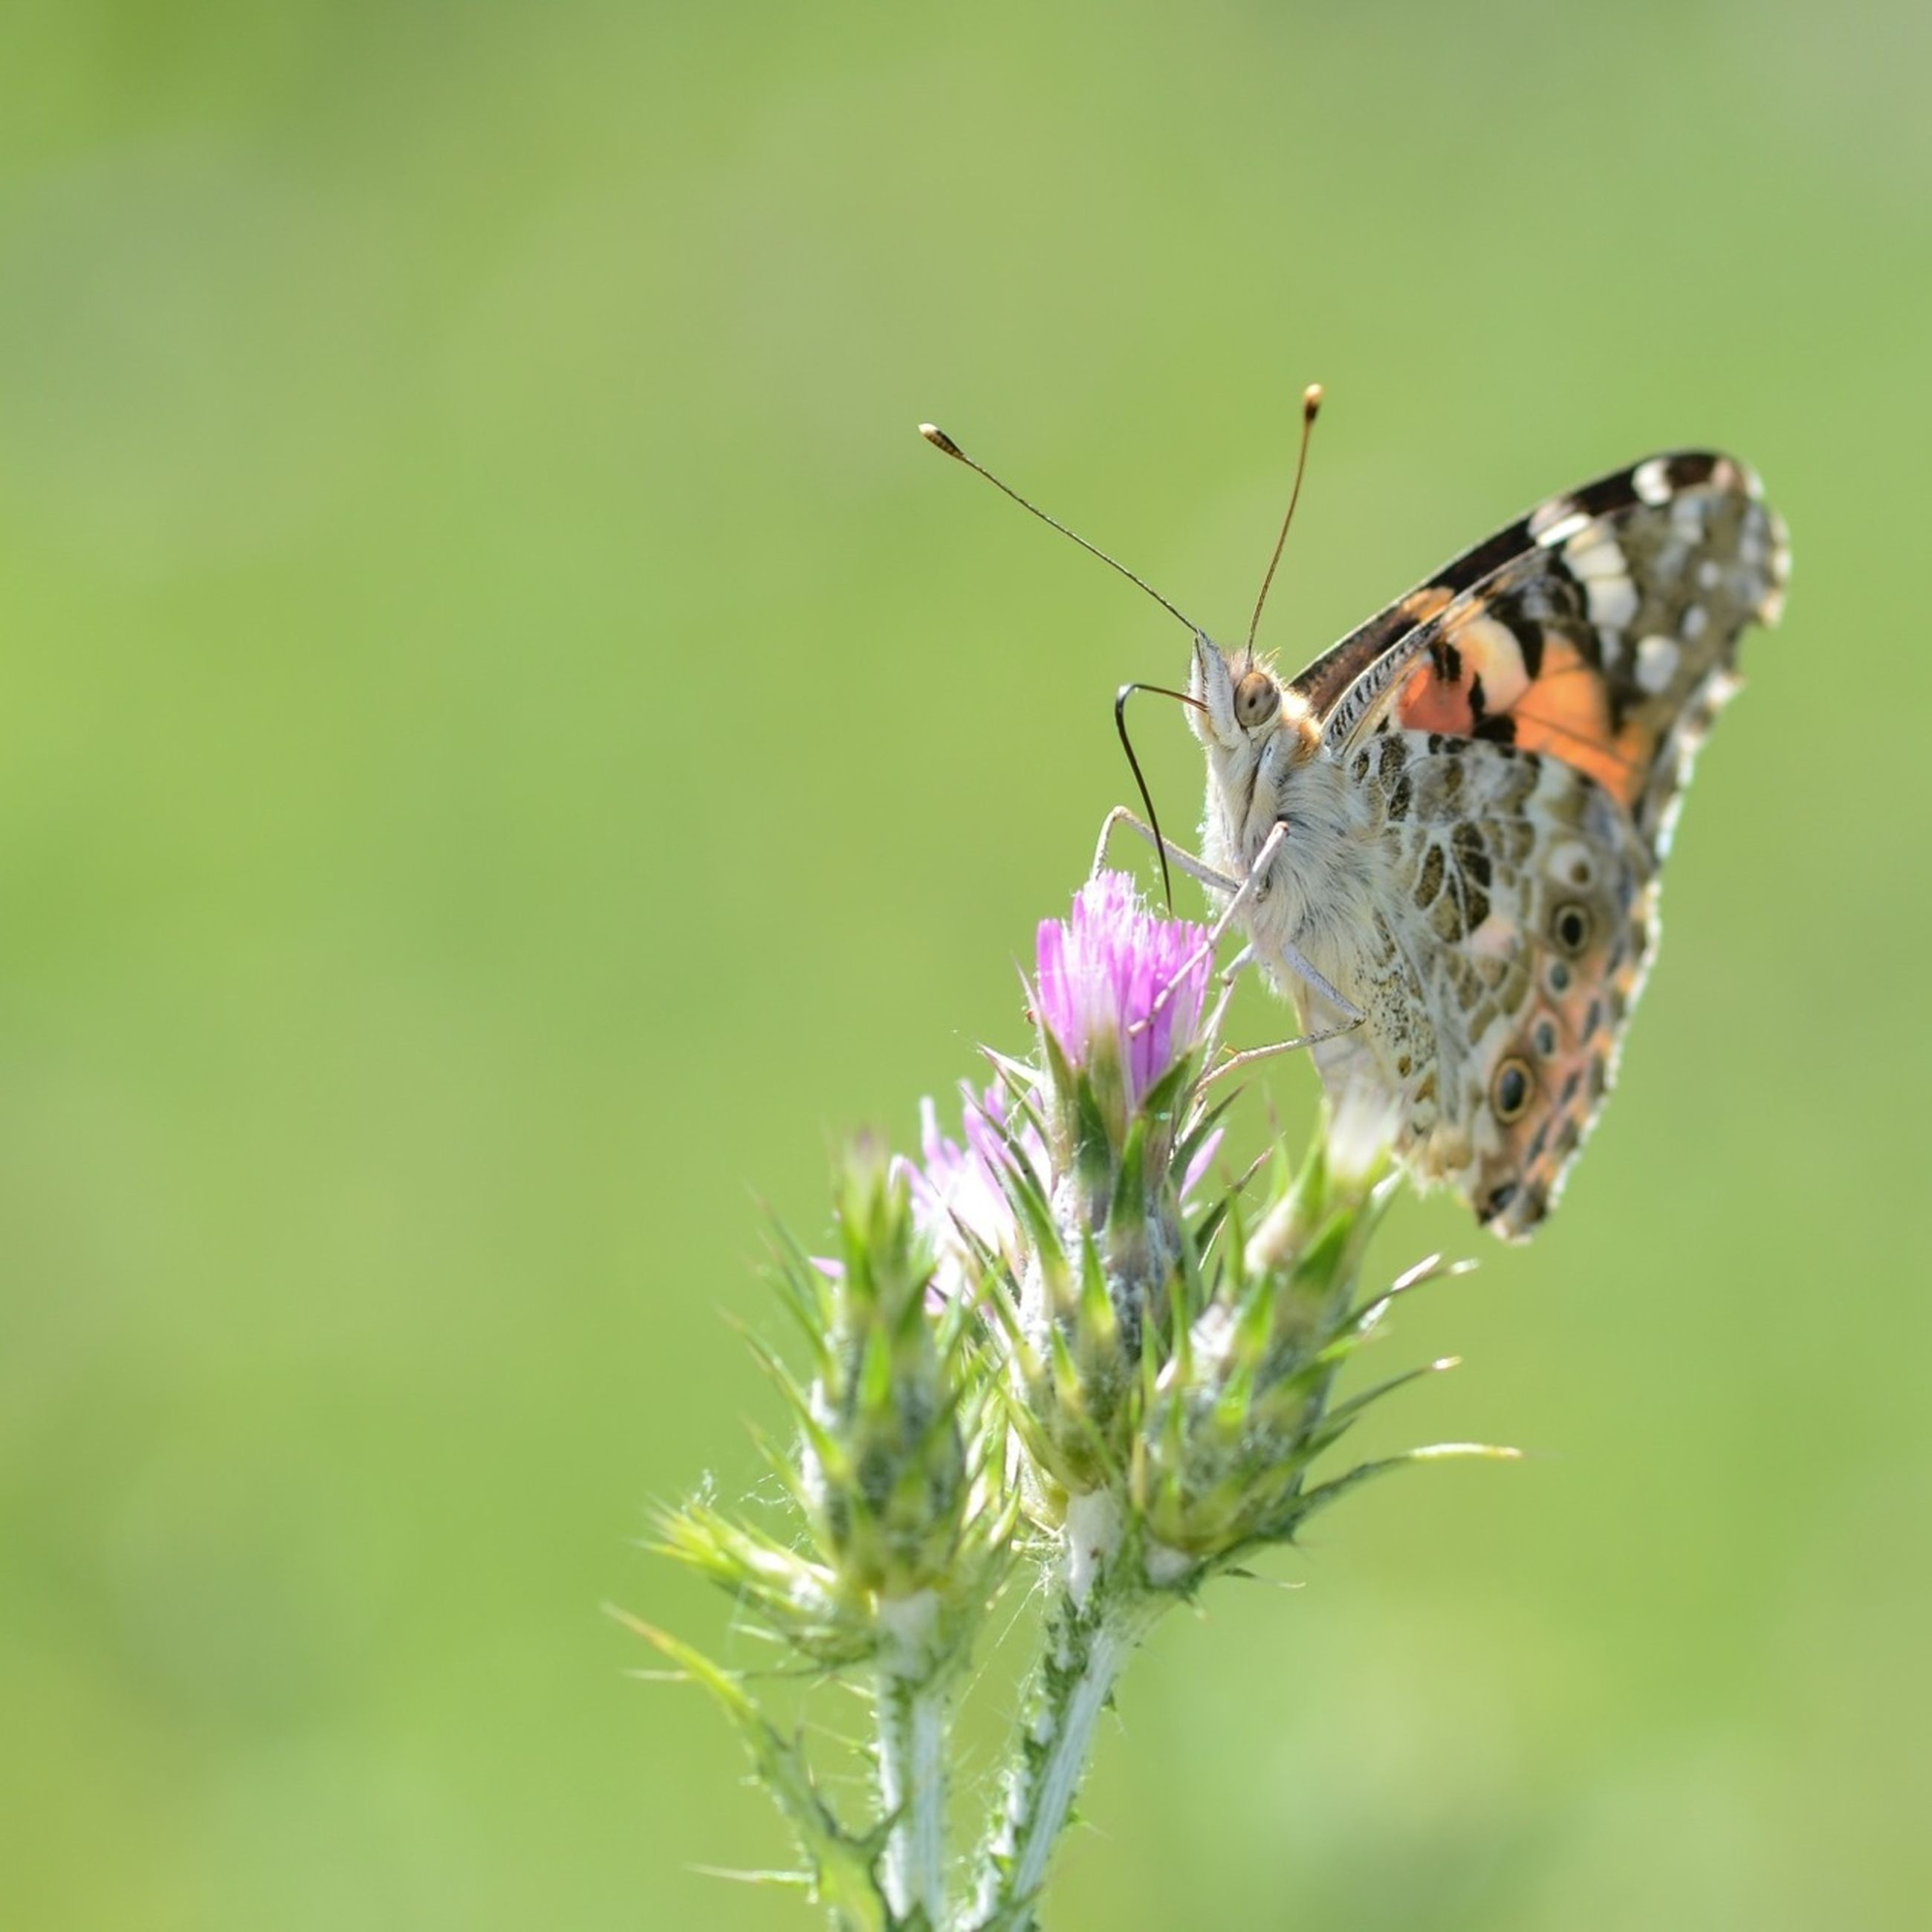 animals in the wild, animal themes, insect, one animal, wildlife, flower, focus on foreground, butterfly - insect, butterfly, close-up, plant, animal wing, nature, beauty in nature, growth, animal markings, pollination, fragility, day, animal antenna